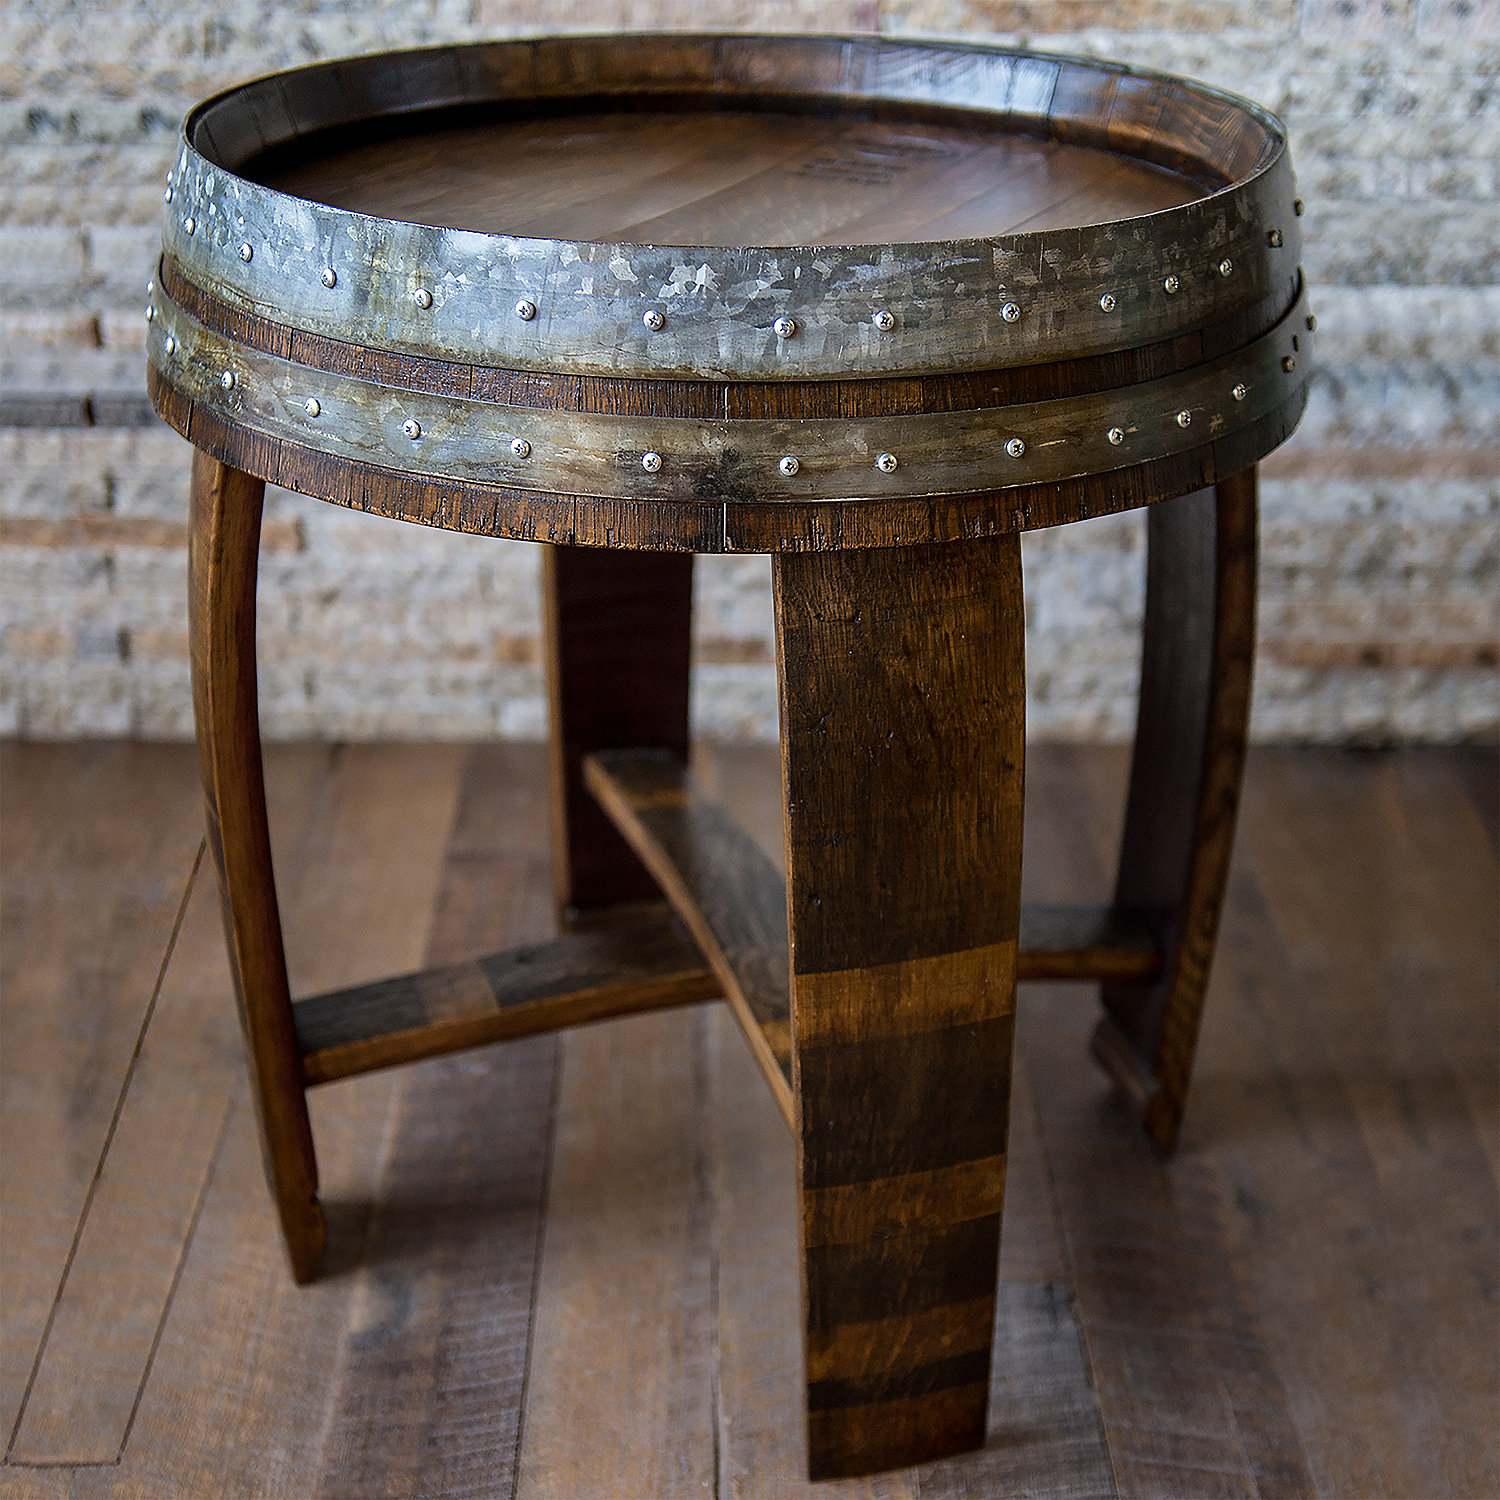 amazing wine barrel side table furniture chair for diy with reclaimed end enthusiast preparing zoom shelf outdoor bedside modern accent ideas metal hairpin legs industrial drawer